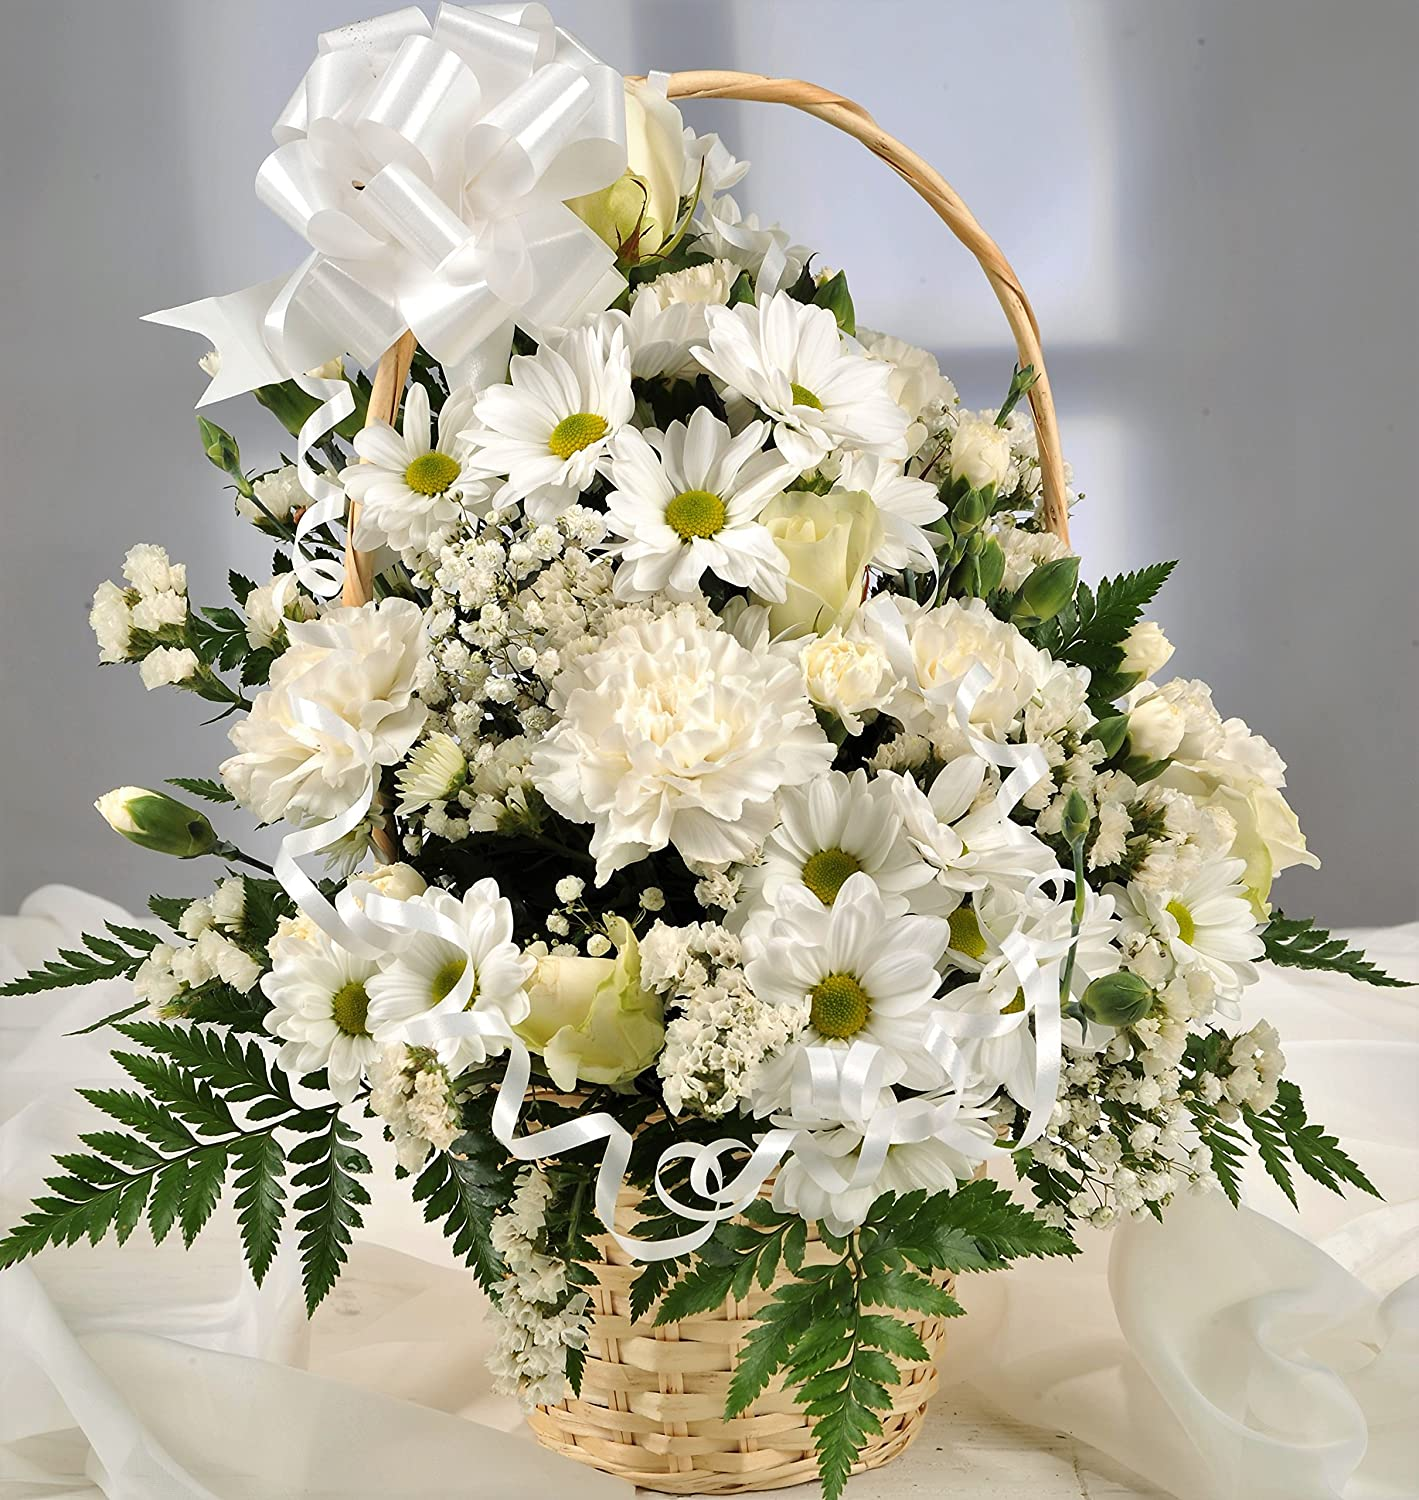 White fresh flower gift basket with handwritten card flowers white fresh flower gift basket with handwritten card flowers delivered next day uk free in a mightylinksfo